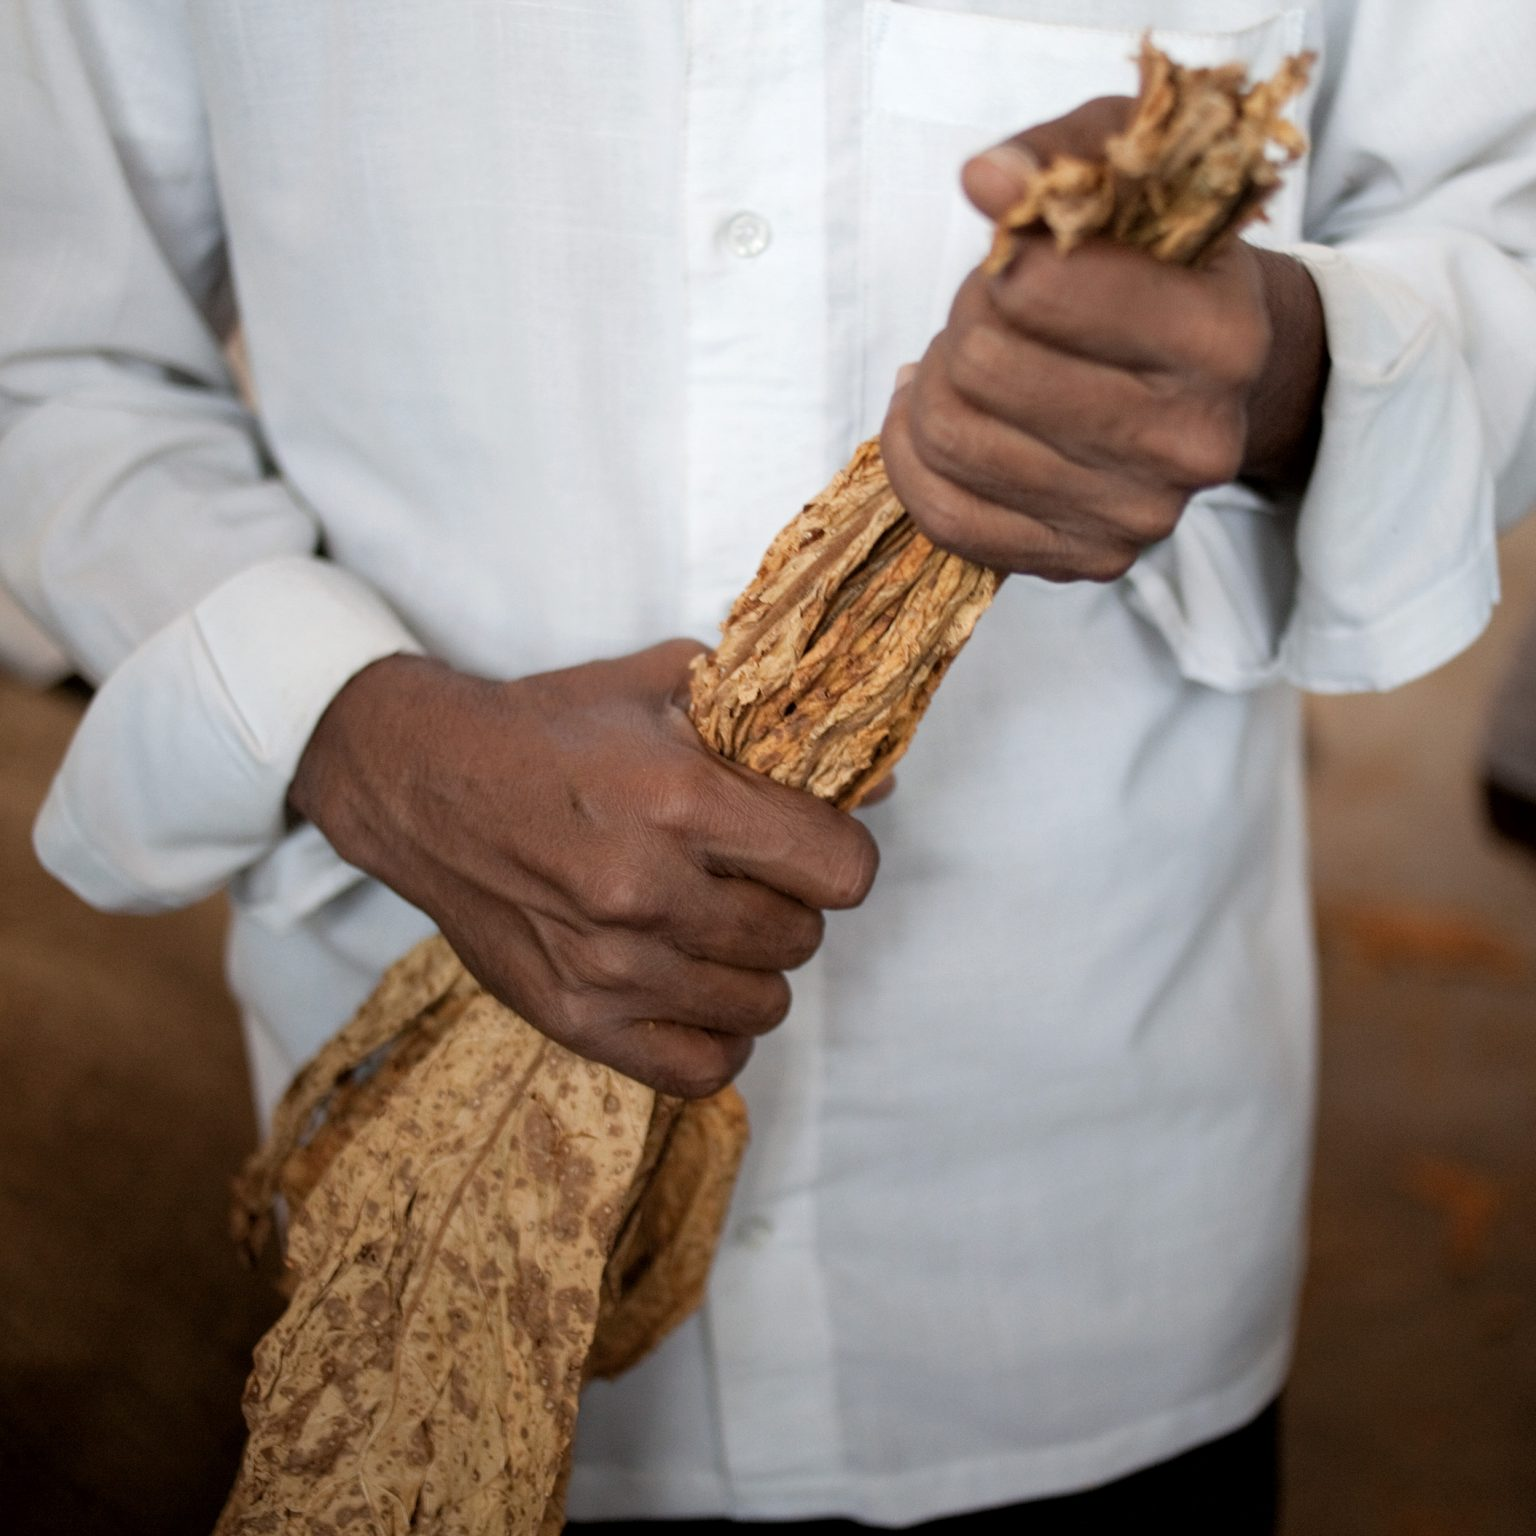 Periyapatna, India. A farmer holding 1st-grade tobacco leaves during the Tobacco Board Periyapatna auction. Today, tobacco prices range between 52 and 130 rupies/kg (1,1-2,8 US$/kg). When dealers and tobacco companies buy a tobacco stock from a farmer, this is given an invoice and will be paid, directly in the bank, after 2 weeks. Only regularly licensed farmers can participate to the auctions. In this region, ITC usually purchases 50% of the auctioned tobacco, while the rest is sold to JPI and other big buyers.